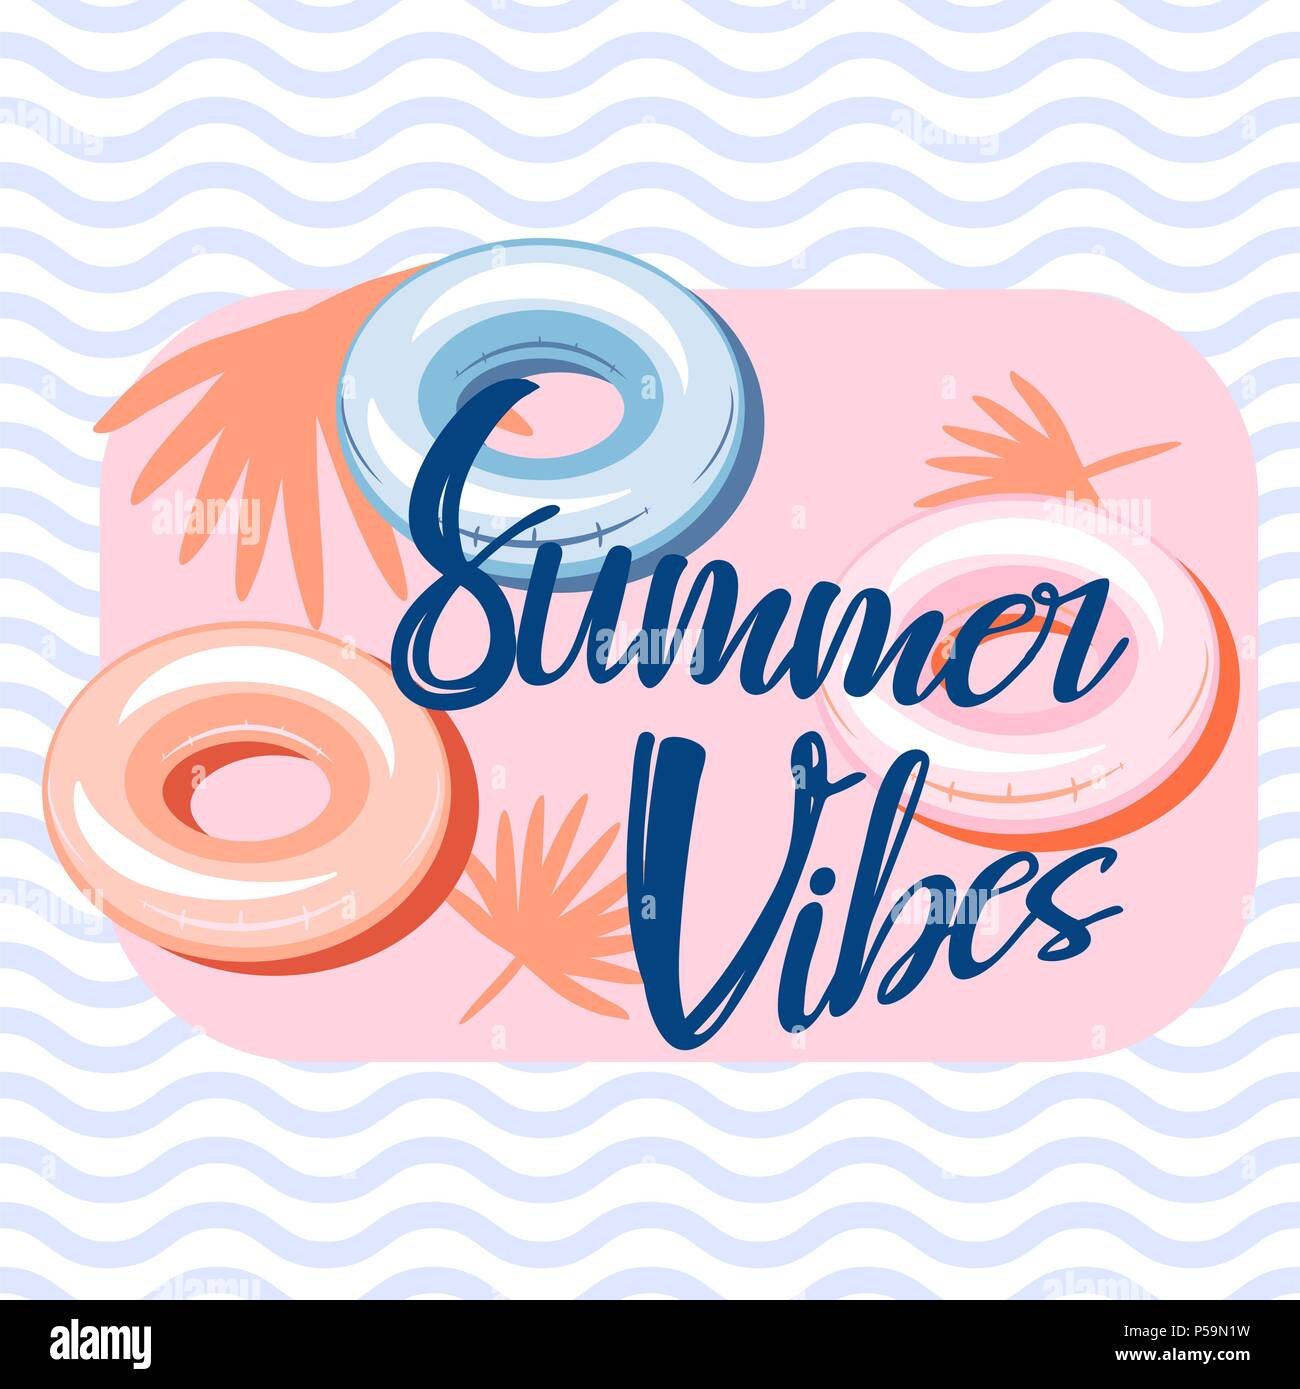 Summer vibes pool banner template design. Stock Vector